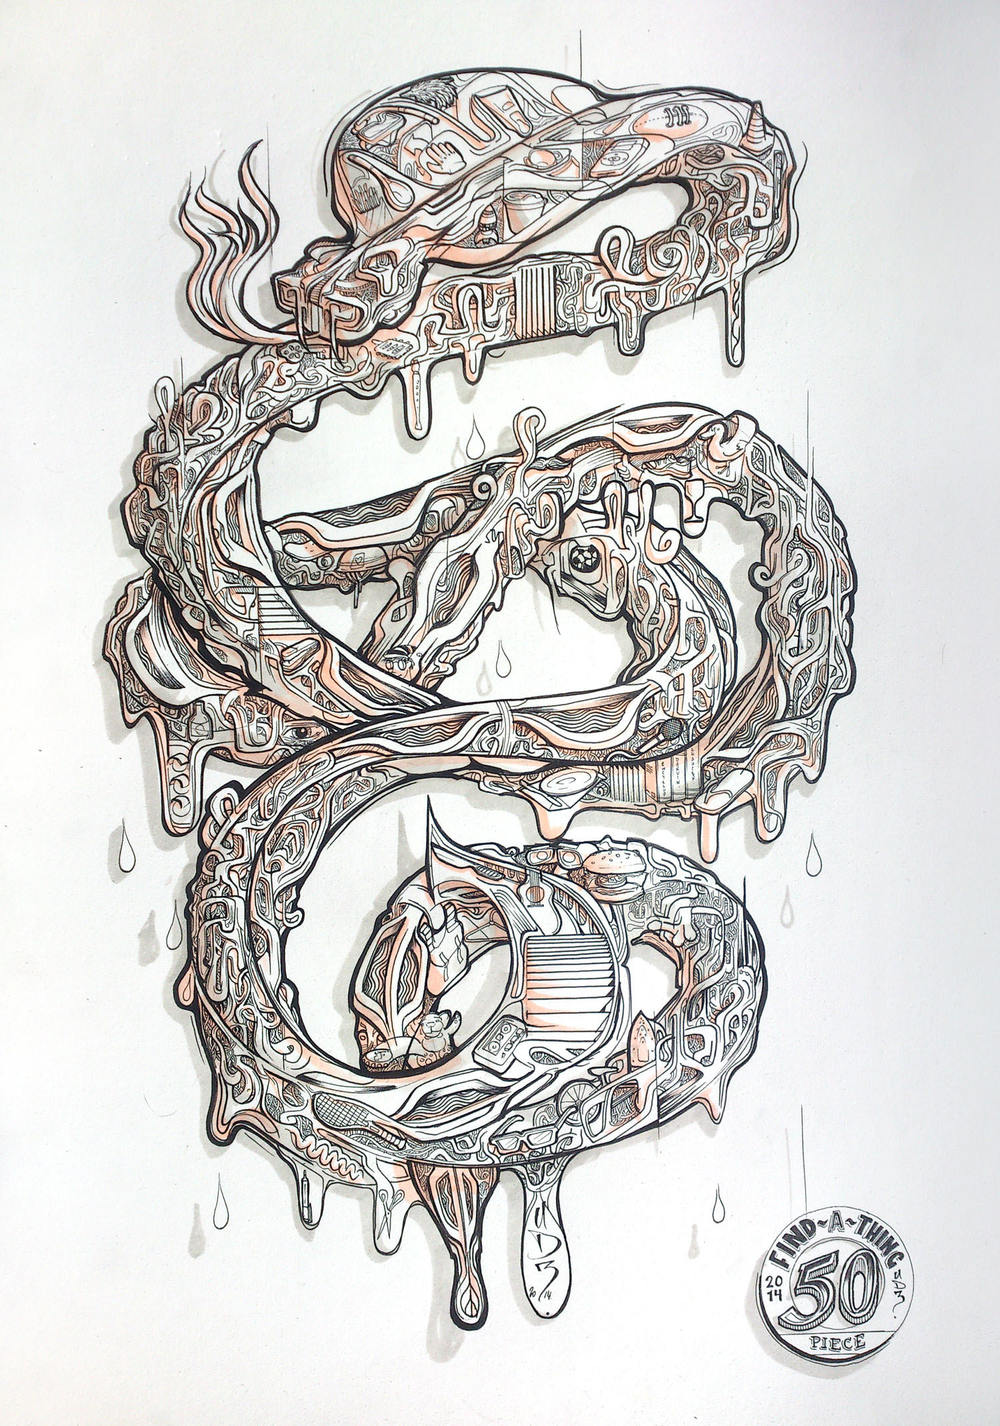 One of the finished pieces, the sea snake.